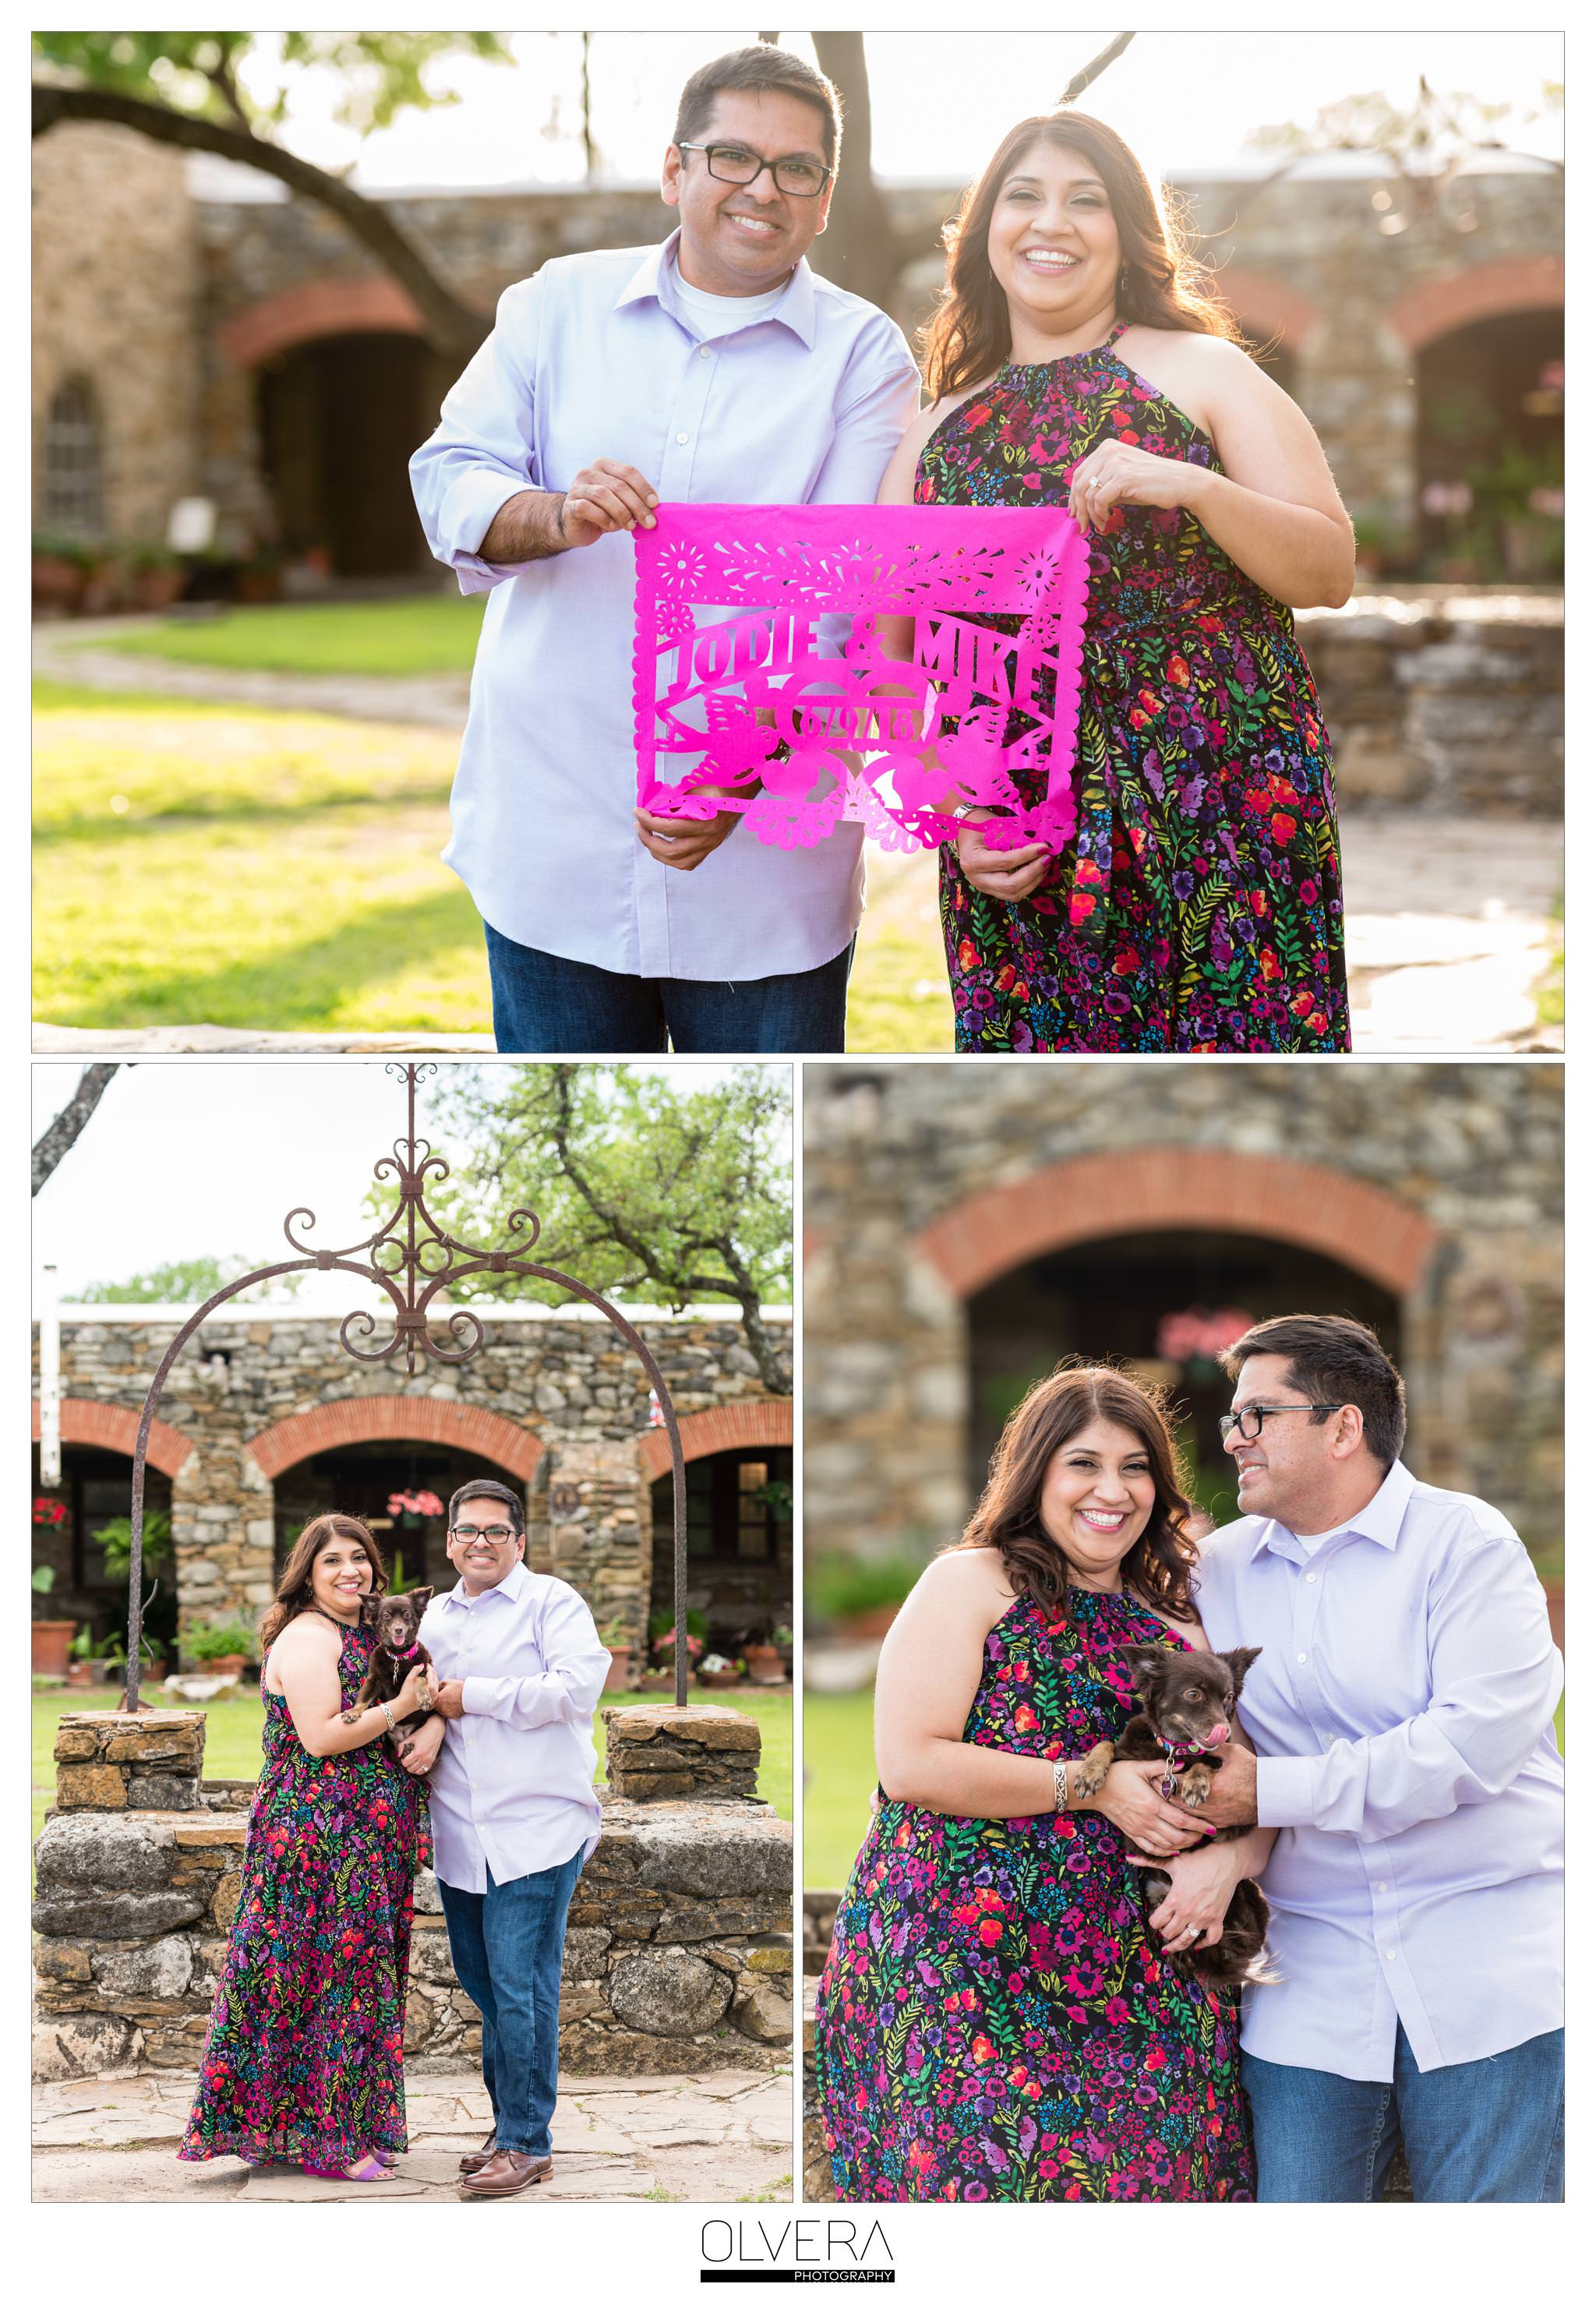 Mission-Espada-Engagement-photos- san antonio wedding photographer 8